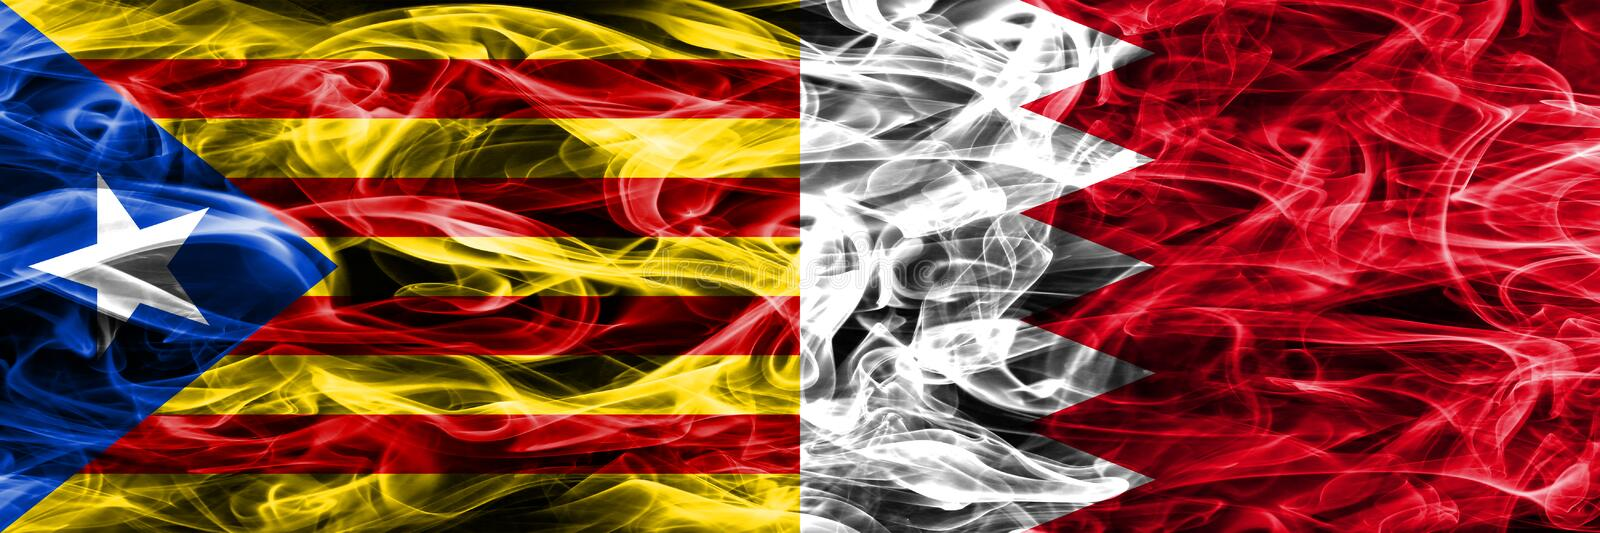 Catalonia vs Bahrain copy smoke flags placed side by side. Thick colored silky smoke flags of Catalan and Bahrain copy.  royalty free illustration